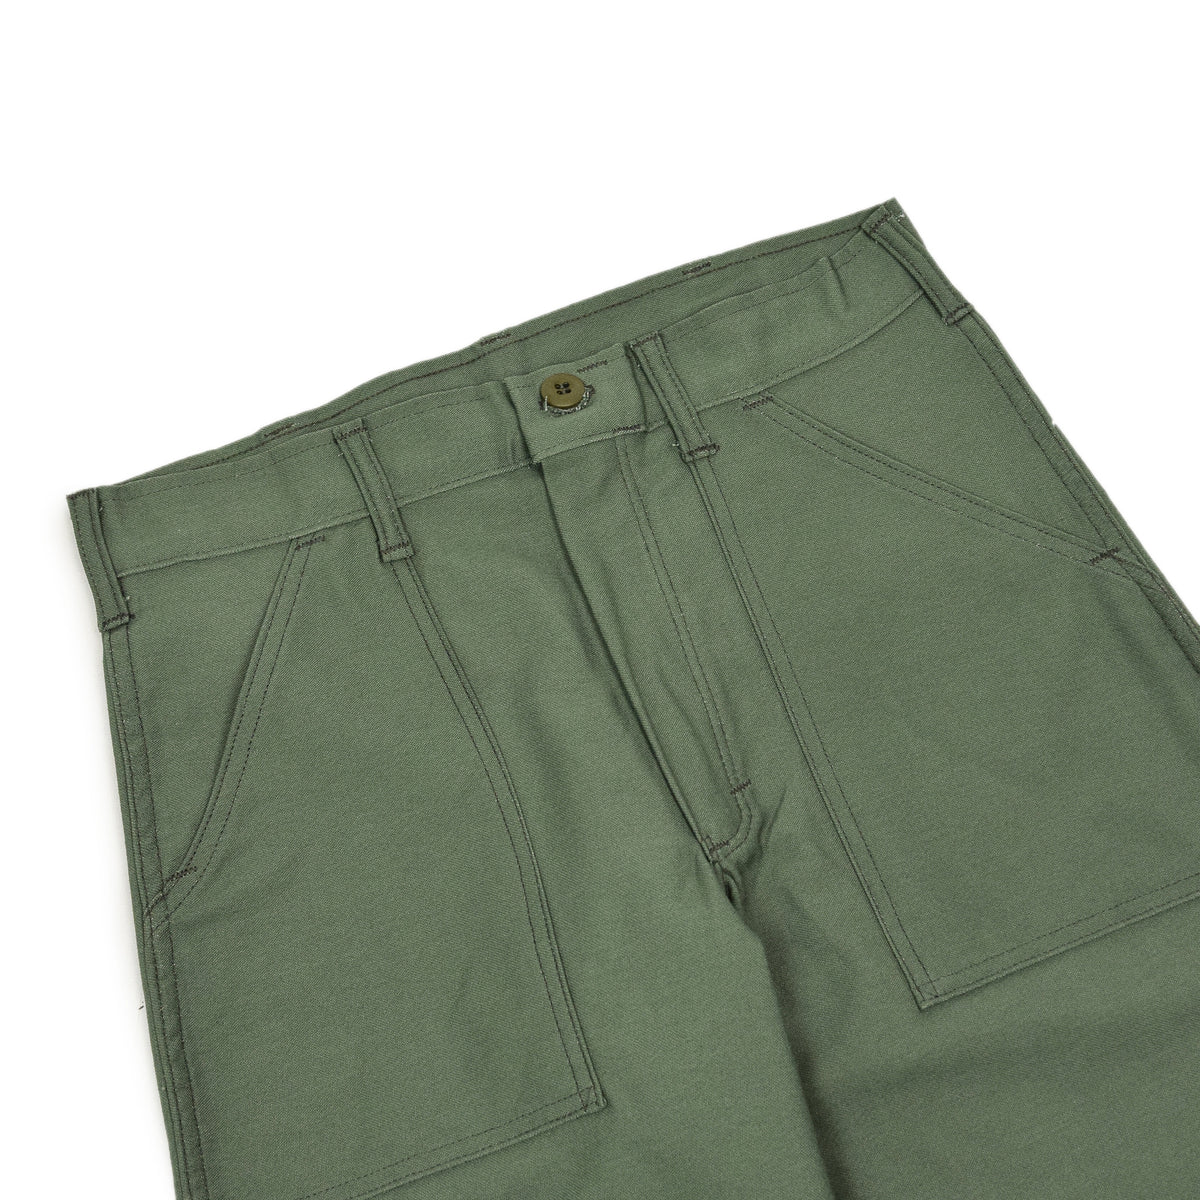 Stan Ray OG Loose Fatigue Trouser Olive Sateen Made in USA waistband